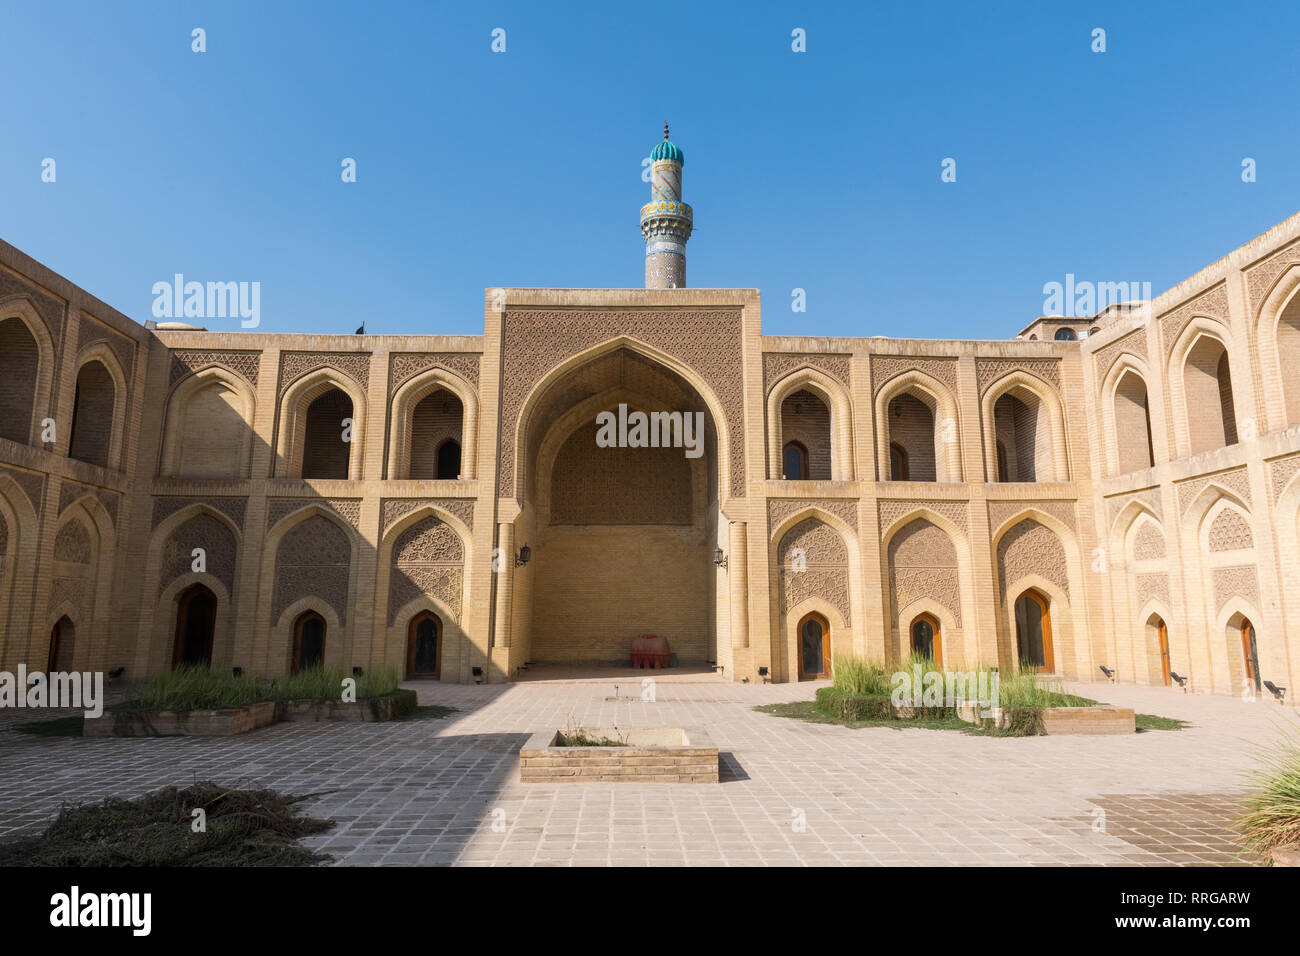 Mustansiriya Madrasah, one of the oldest colleges in the world, Baghdad, Iraq, Middle East - Stock Image